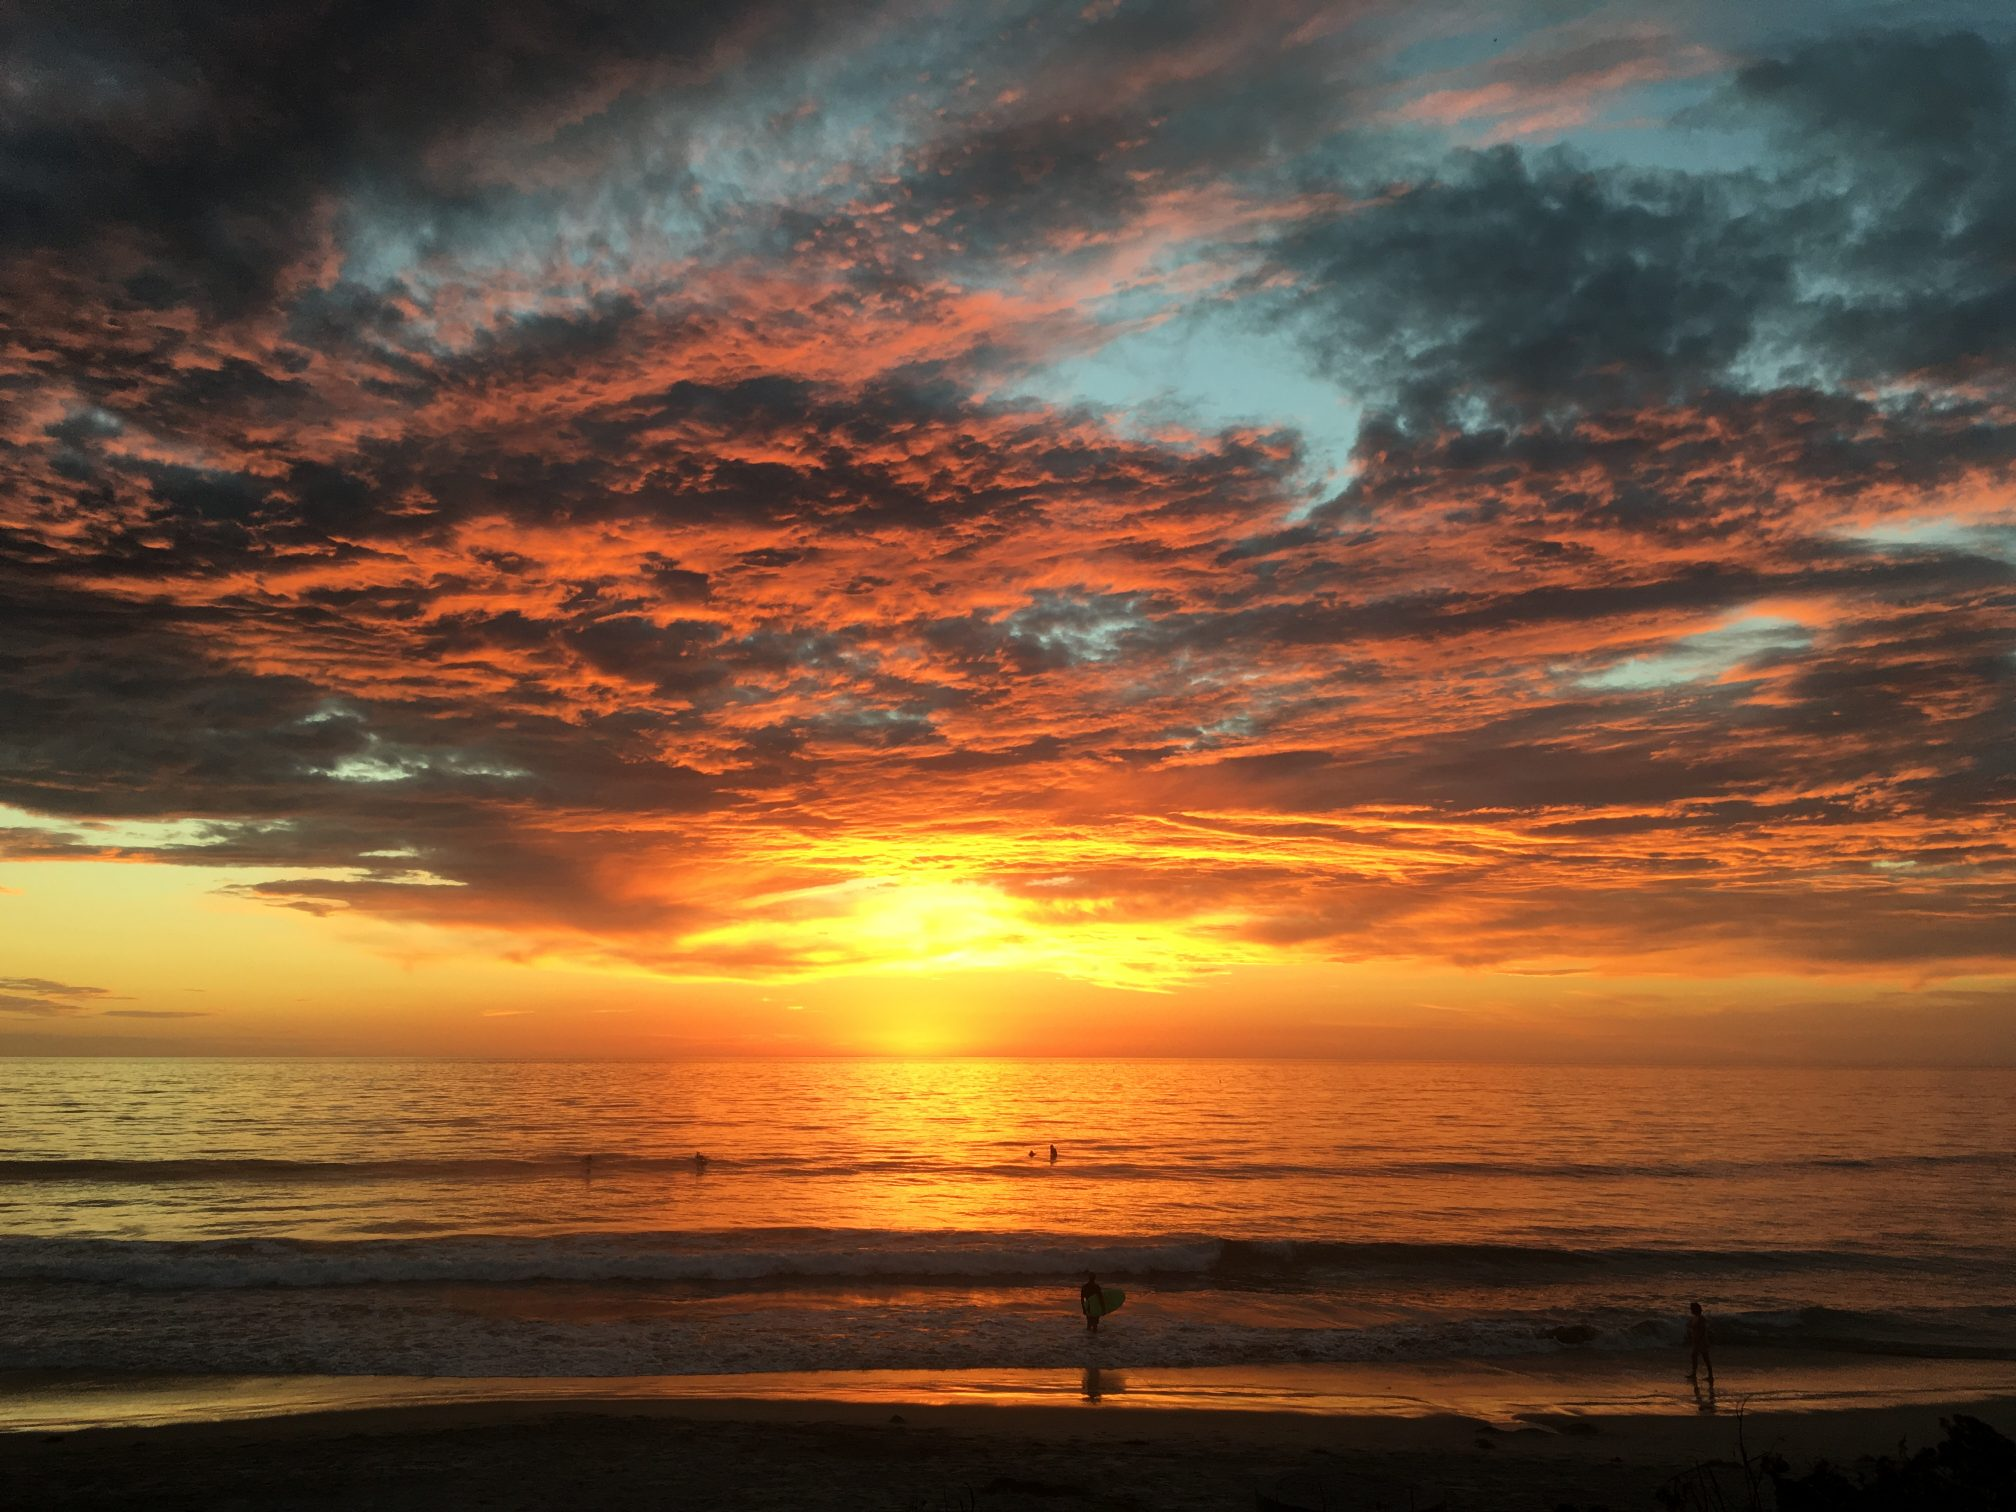 Sunset at Del Mar California - Business Optimization